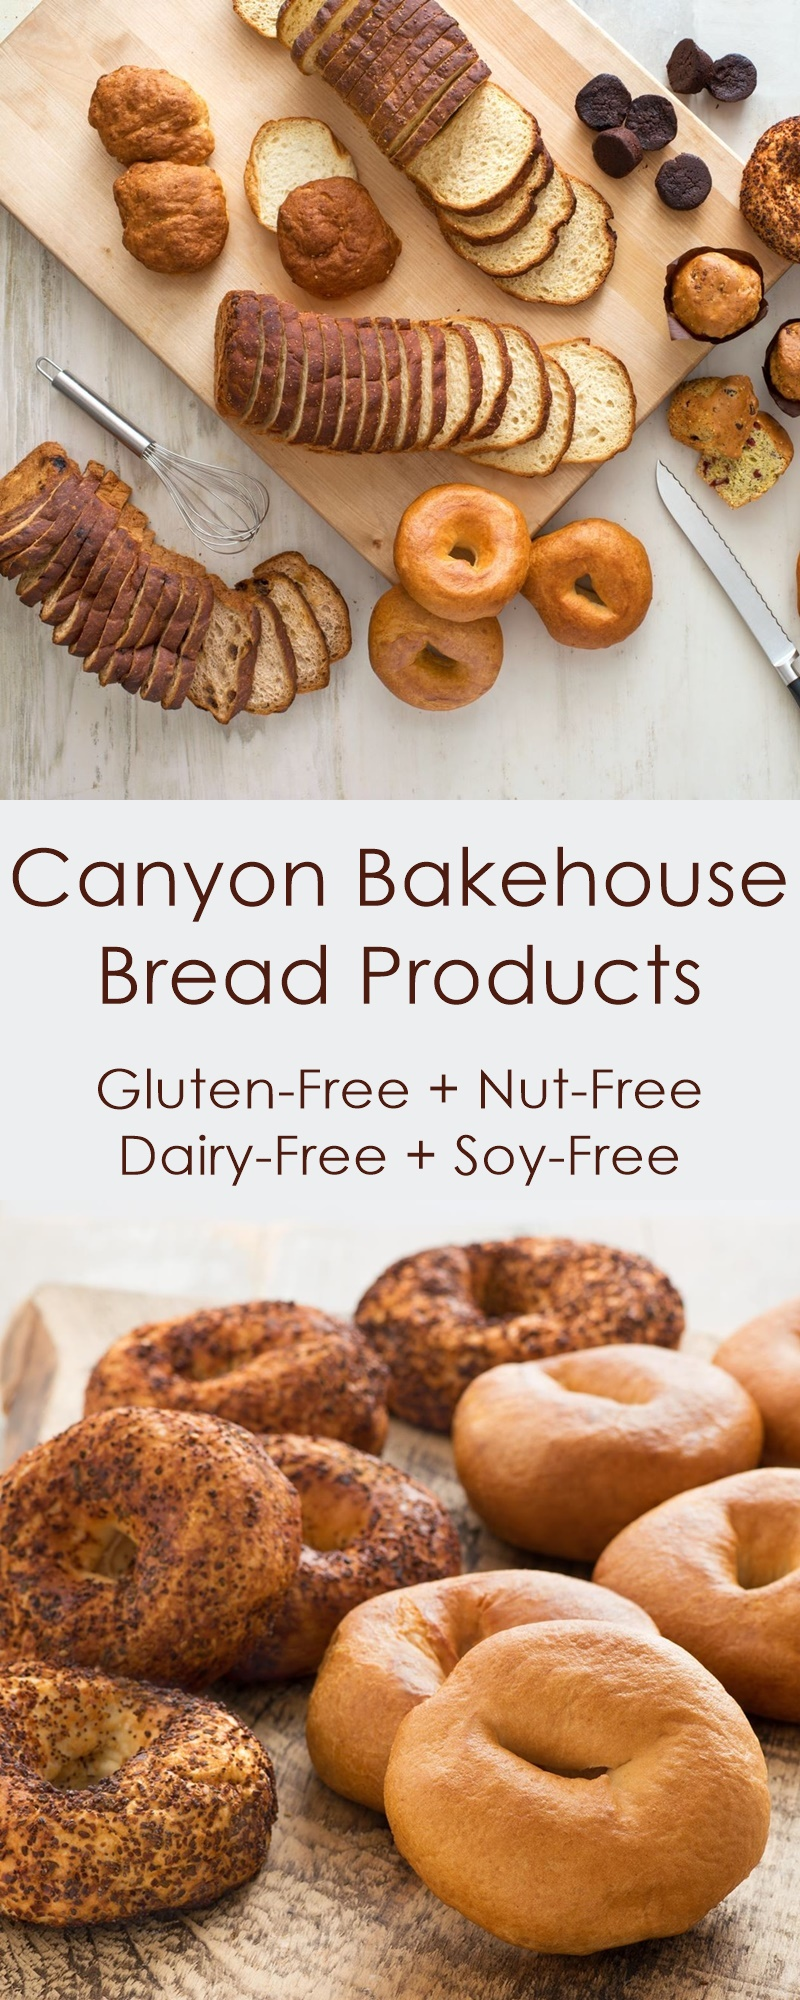 Canyon Bakehouse Gluten-Free Bread Products - bagels, loaves and buns, all dairy-free, nut-free and soy-free